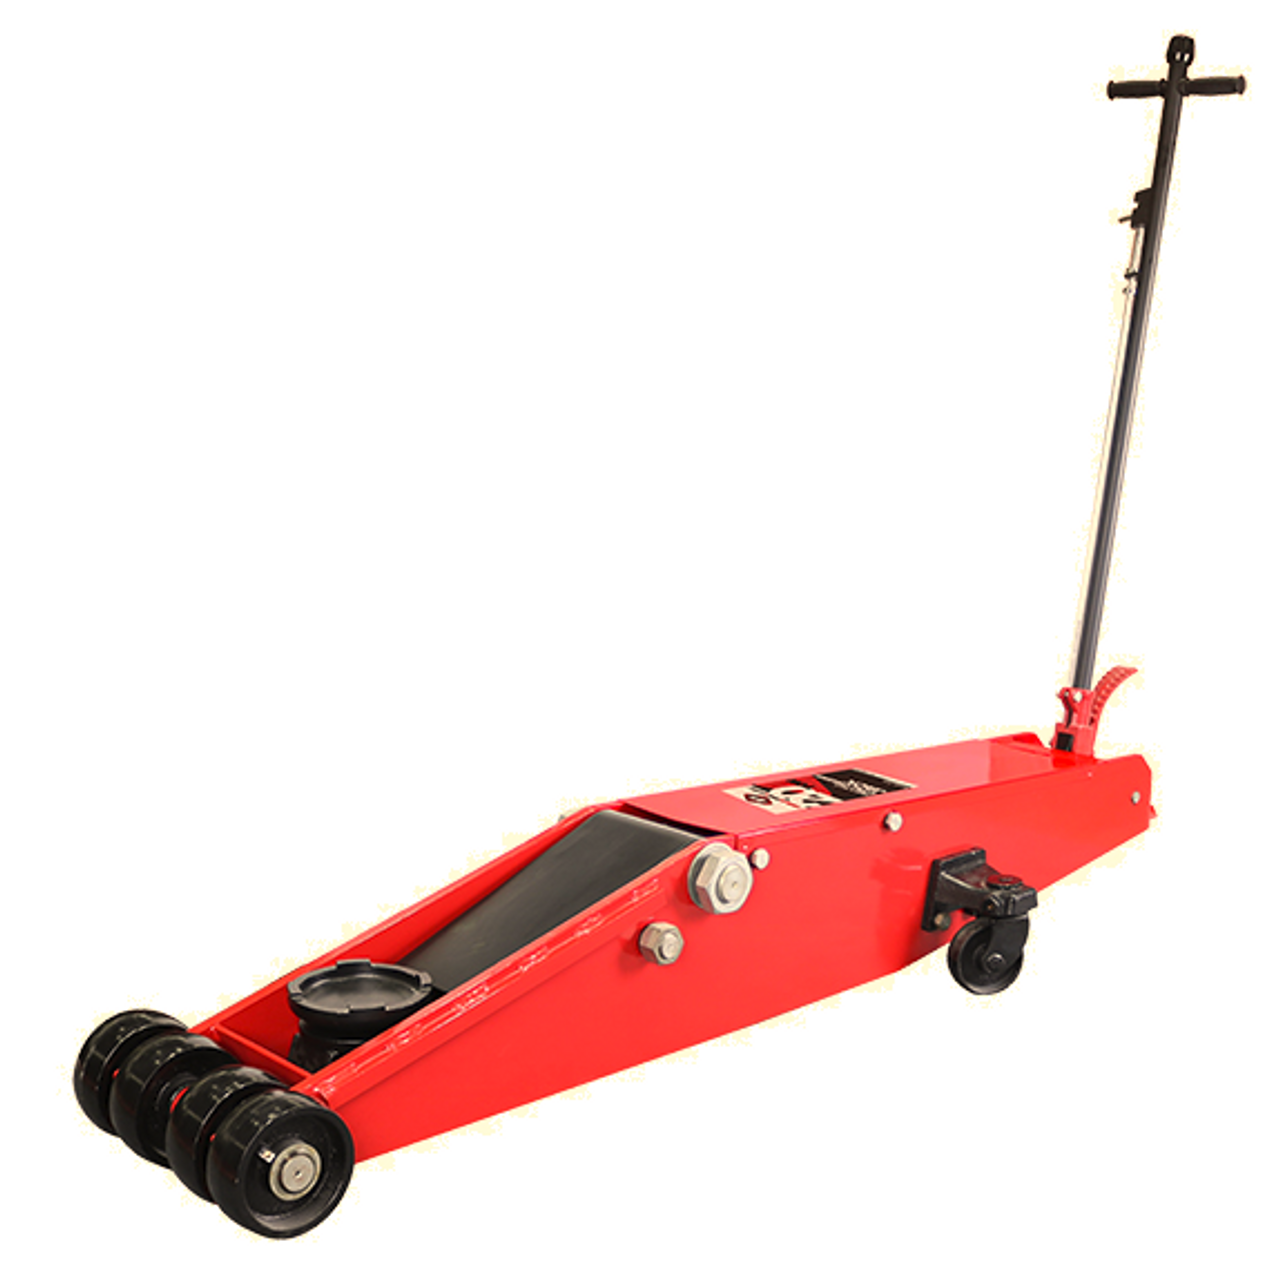 AFF3225 Heavy Duty 20 Ton Long Chassis Jacks | Mile - X Equipment